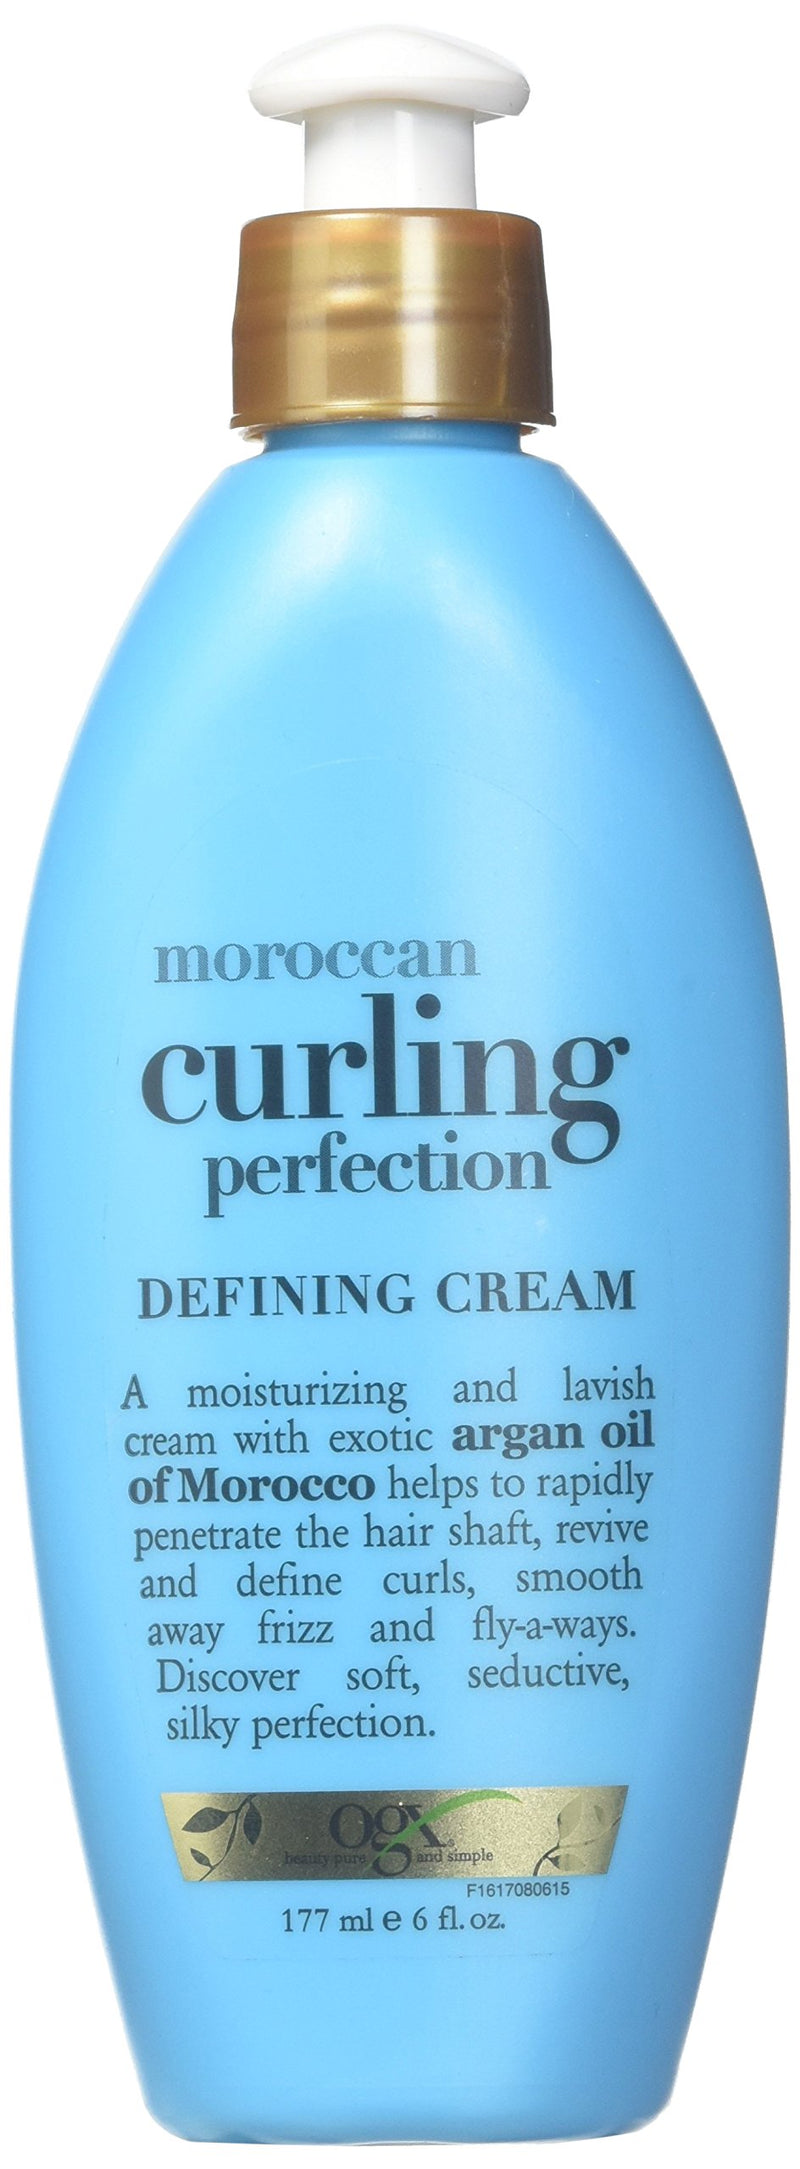 OGX Organic Moroccan Curl Perfection Defining Cream (177 ml, 6 oz)